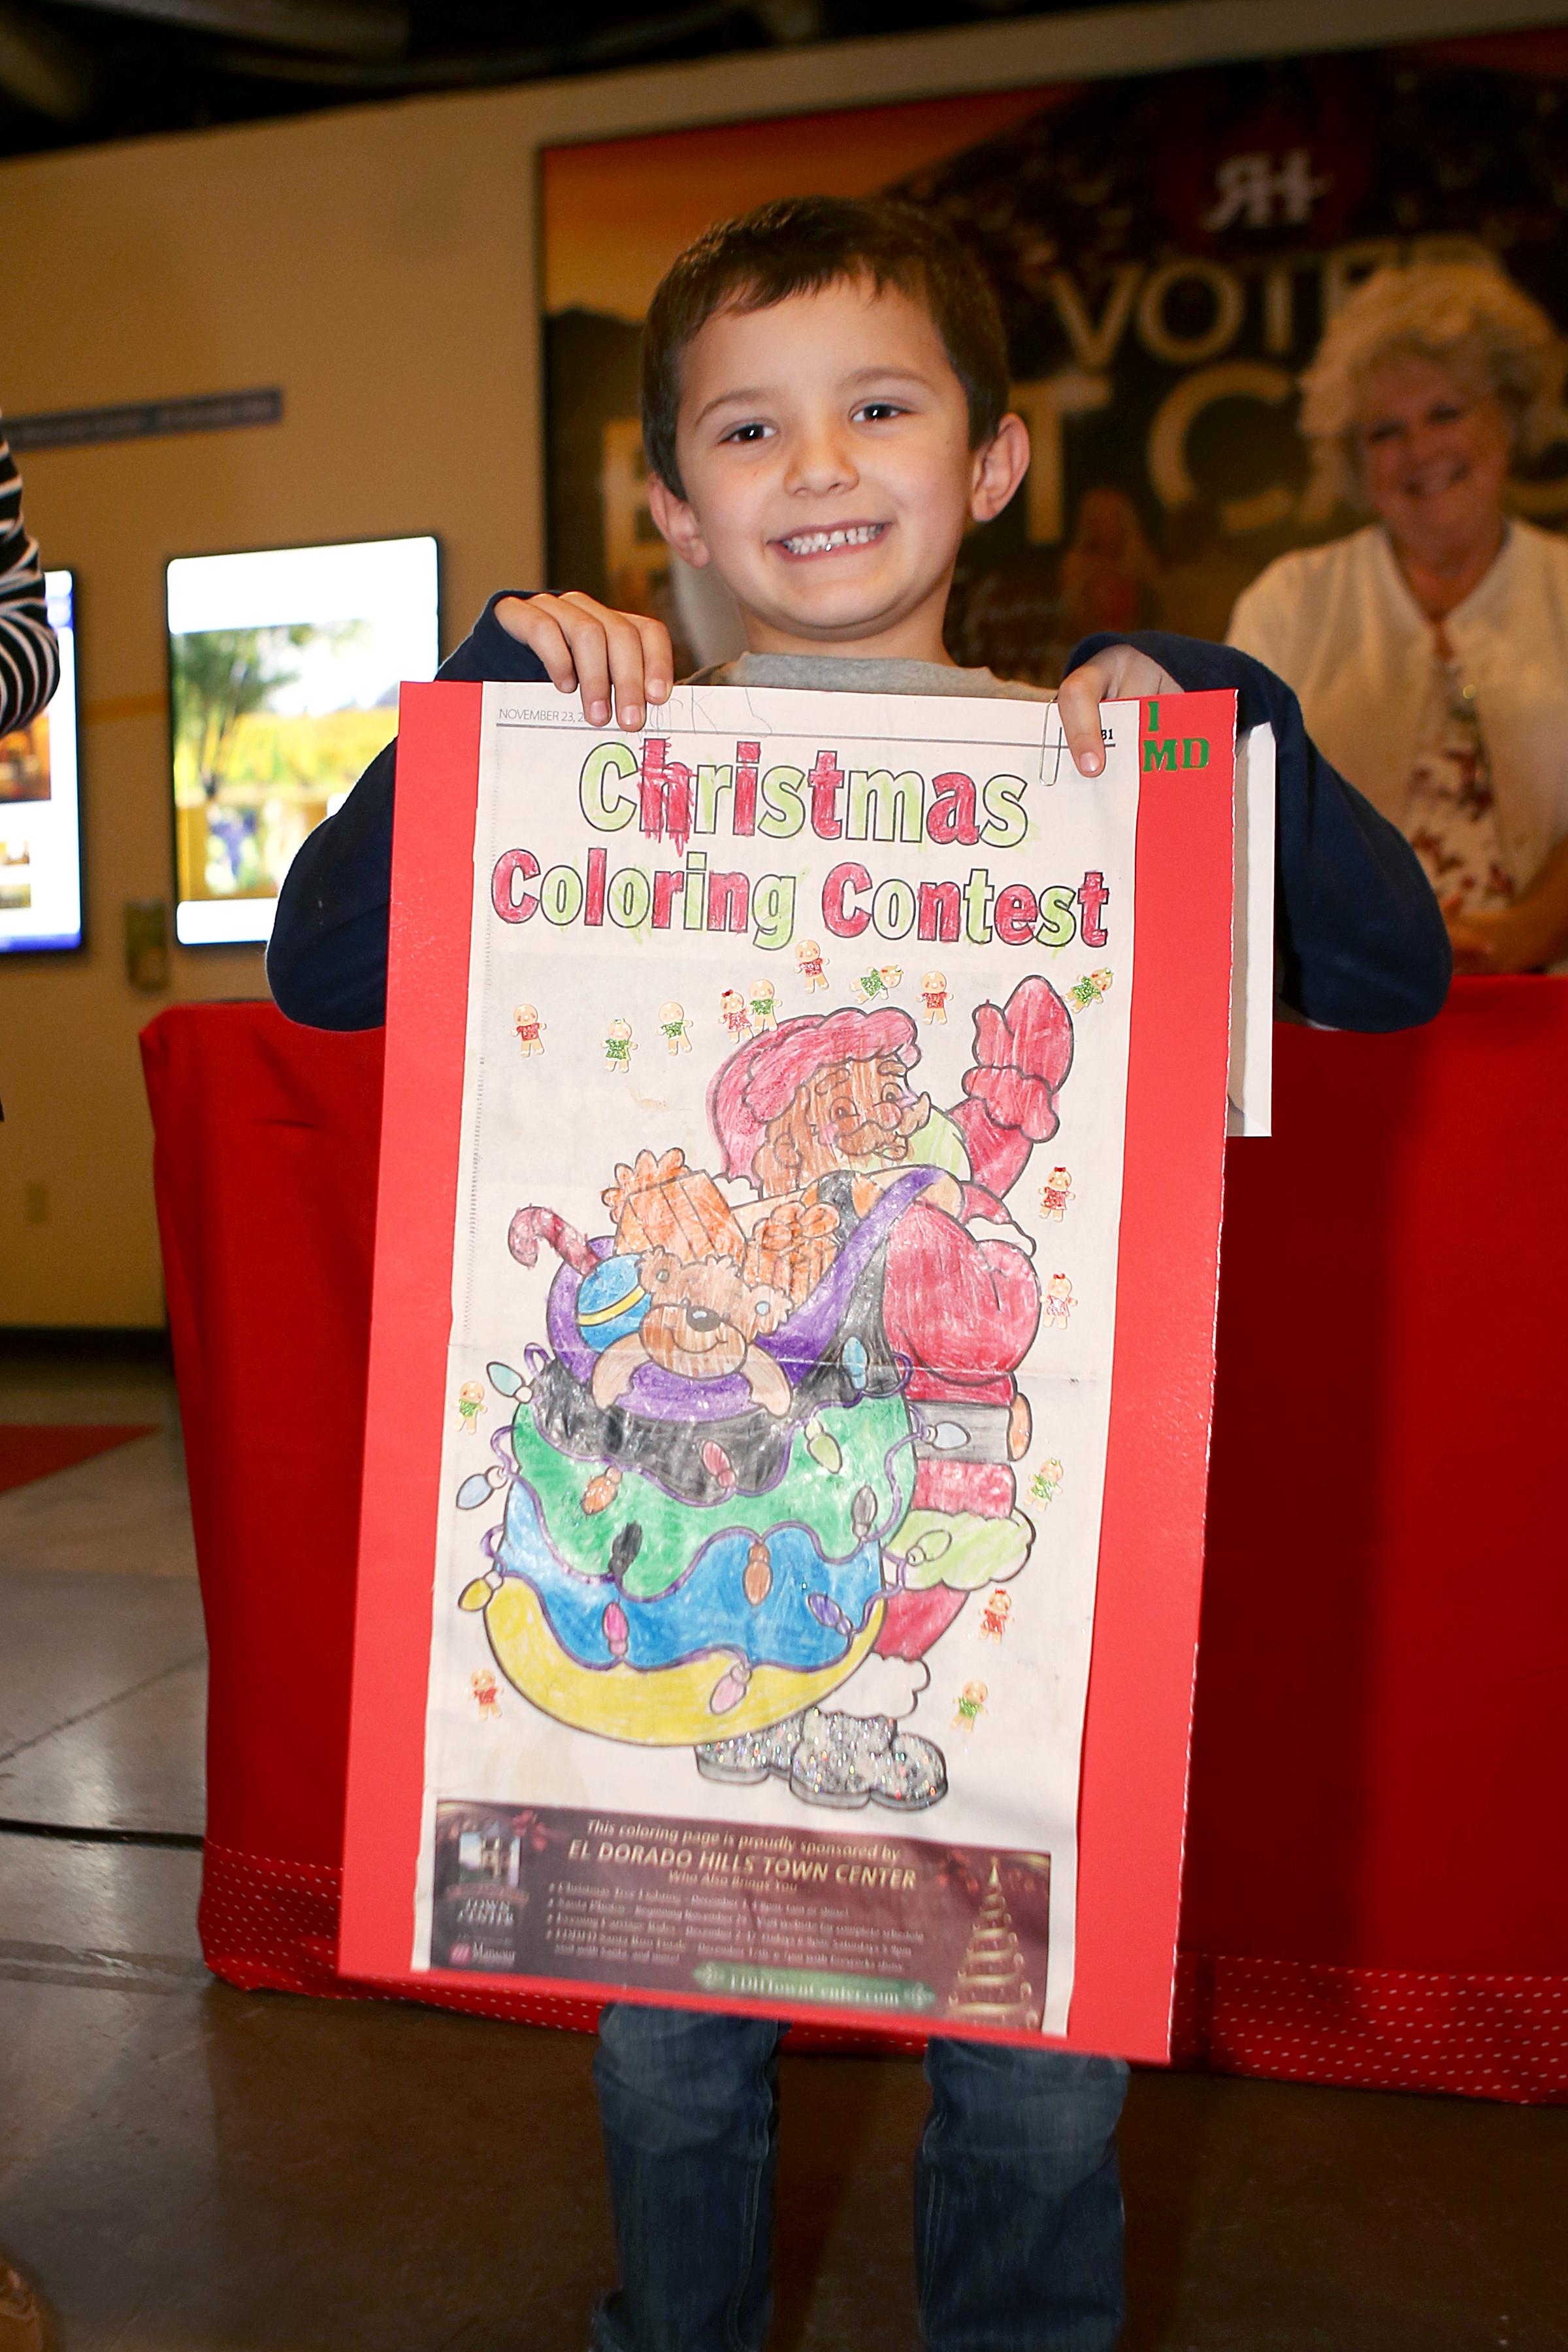 First place winner, Mark Dagenais, 5, of El Dorado Hills. Democrat photo by Shelly Thorene